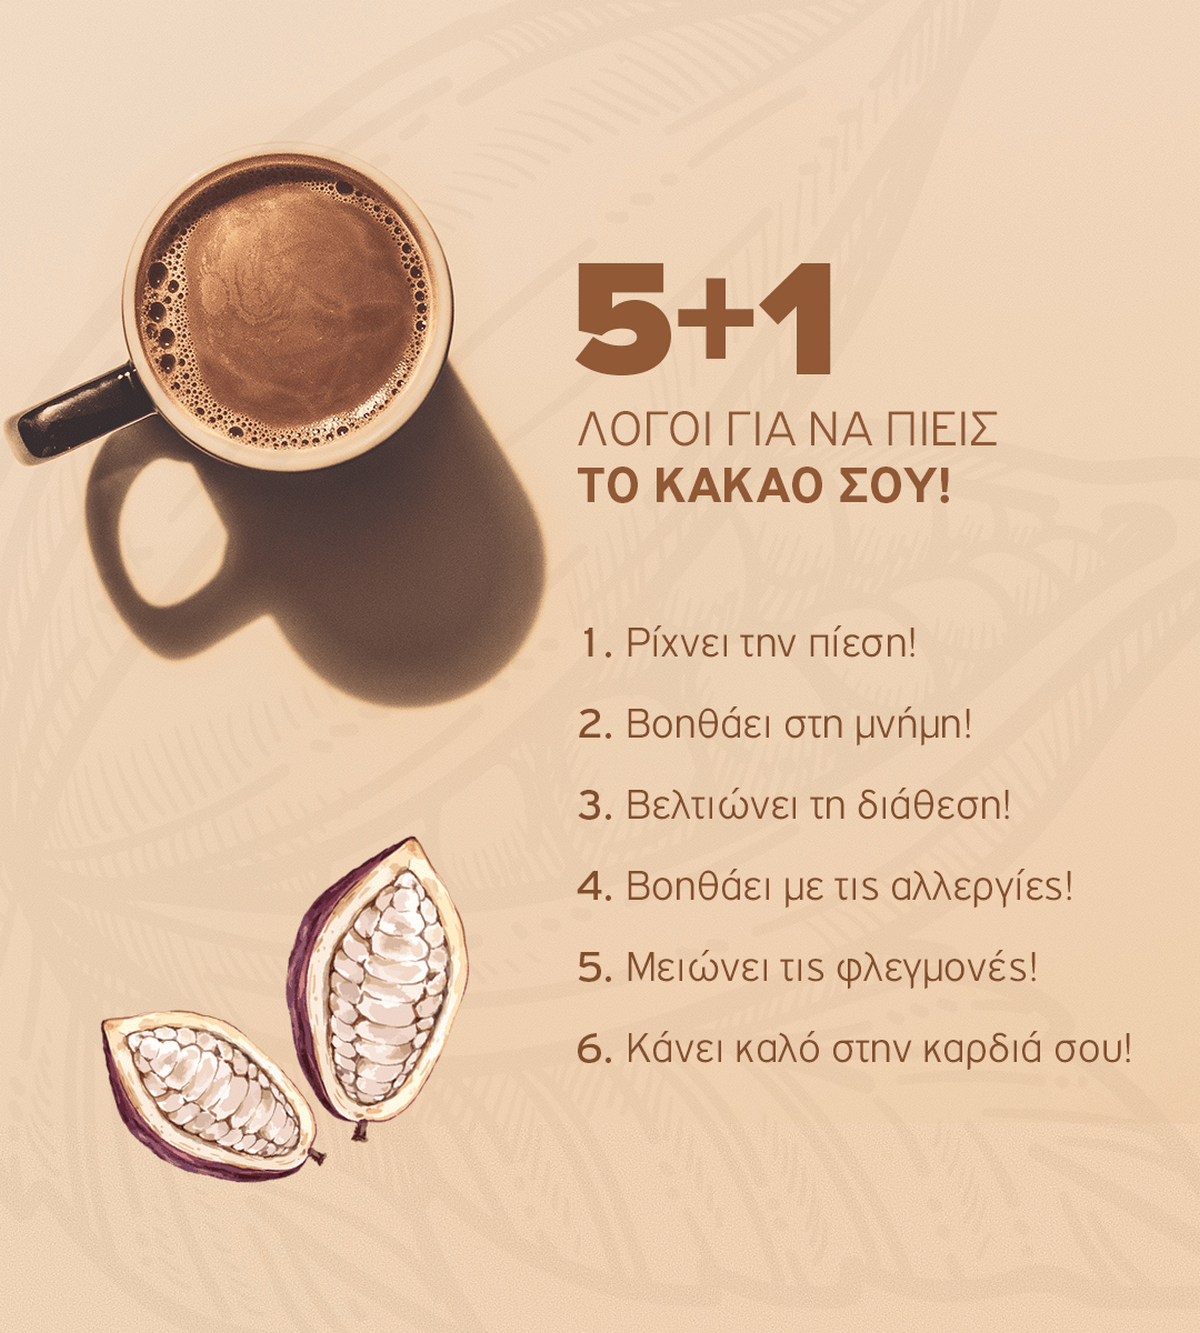 cocoainfographic